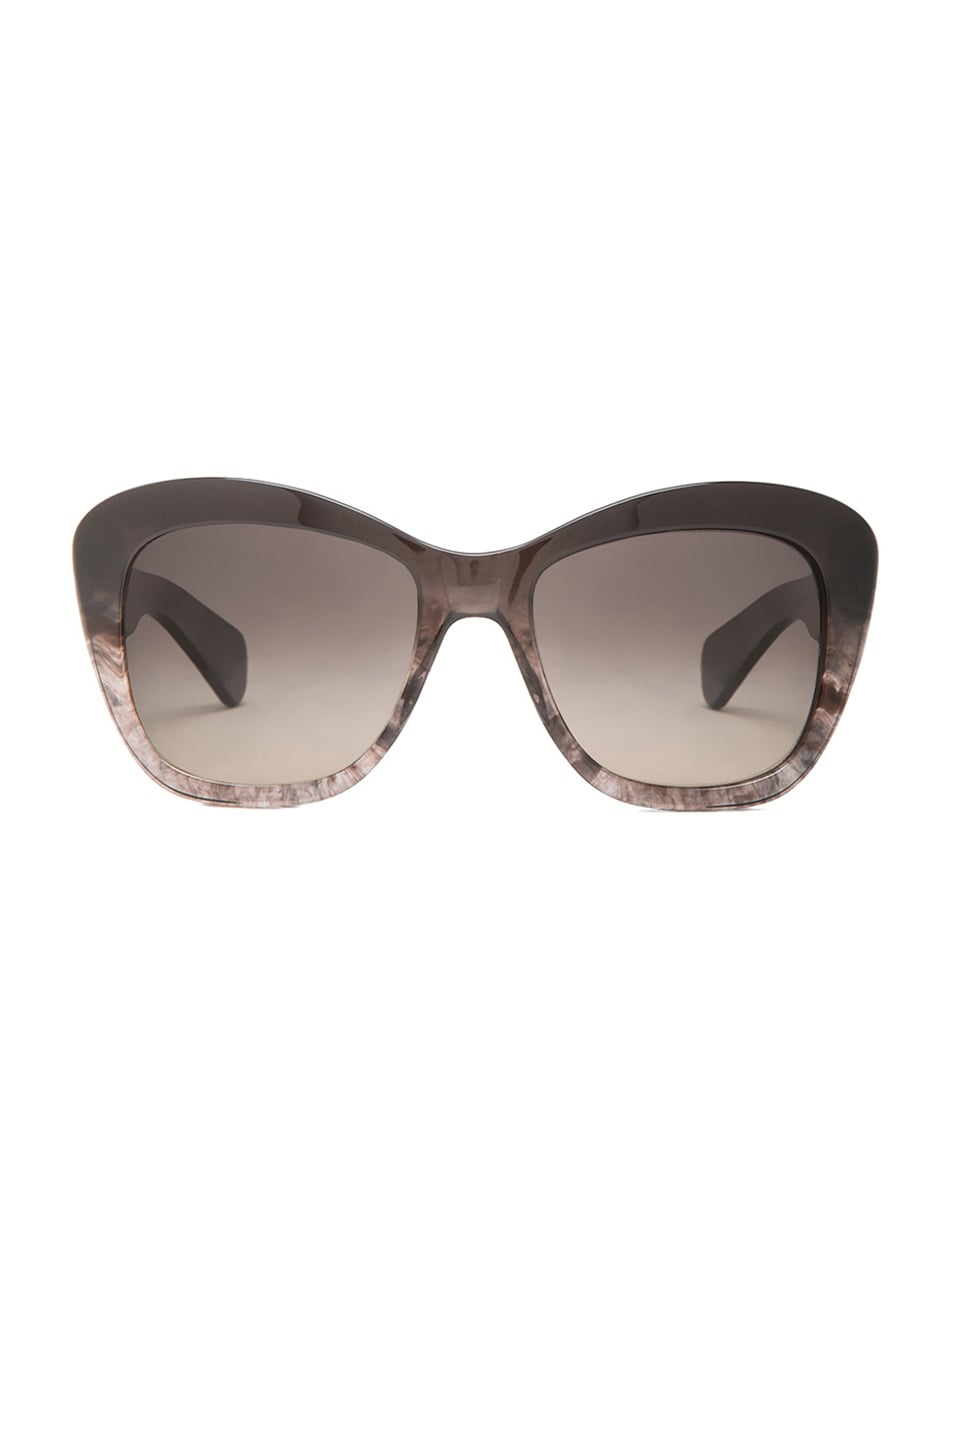 Image 1 of Oliver Peoples Polarized Emmy Sunglasses in Faded Dusk